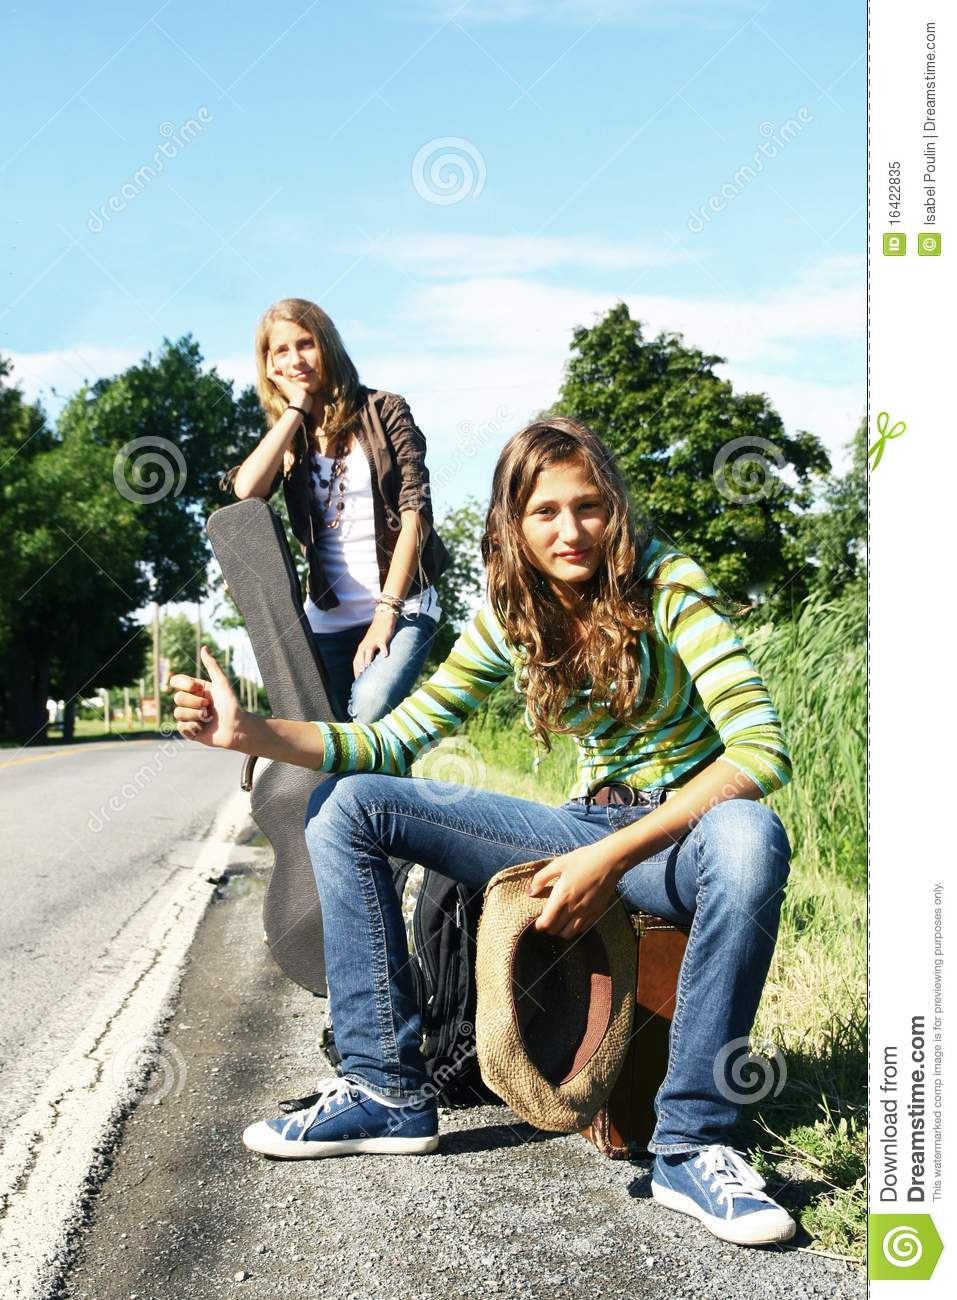 young-teen-hitchhikers